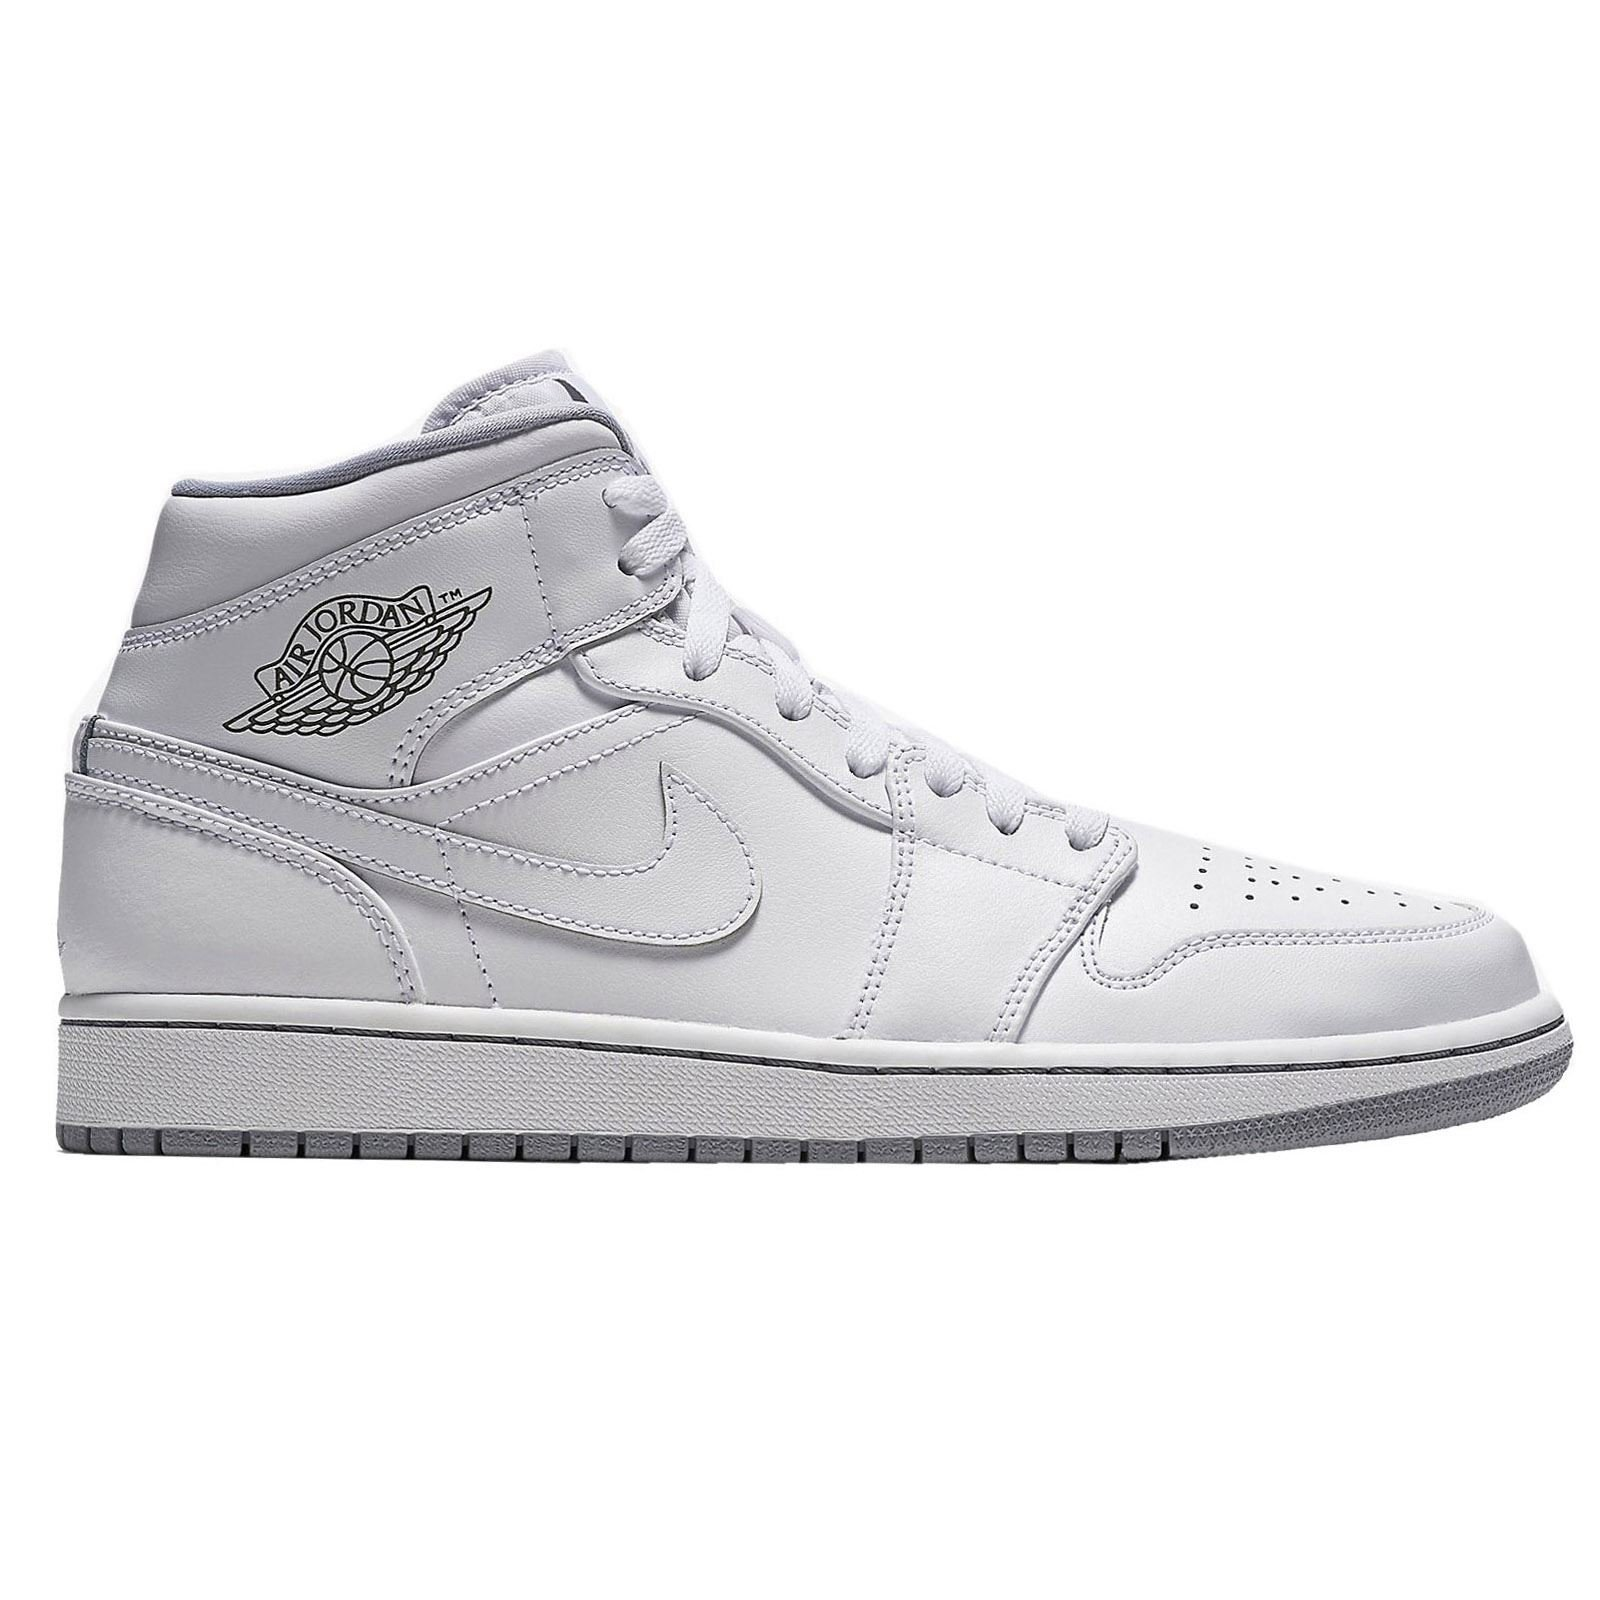 NIKE Youths Air Jordan 1 Mid White Leather Trainers 38.5 EU by NIKE